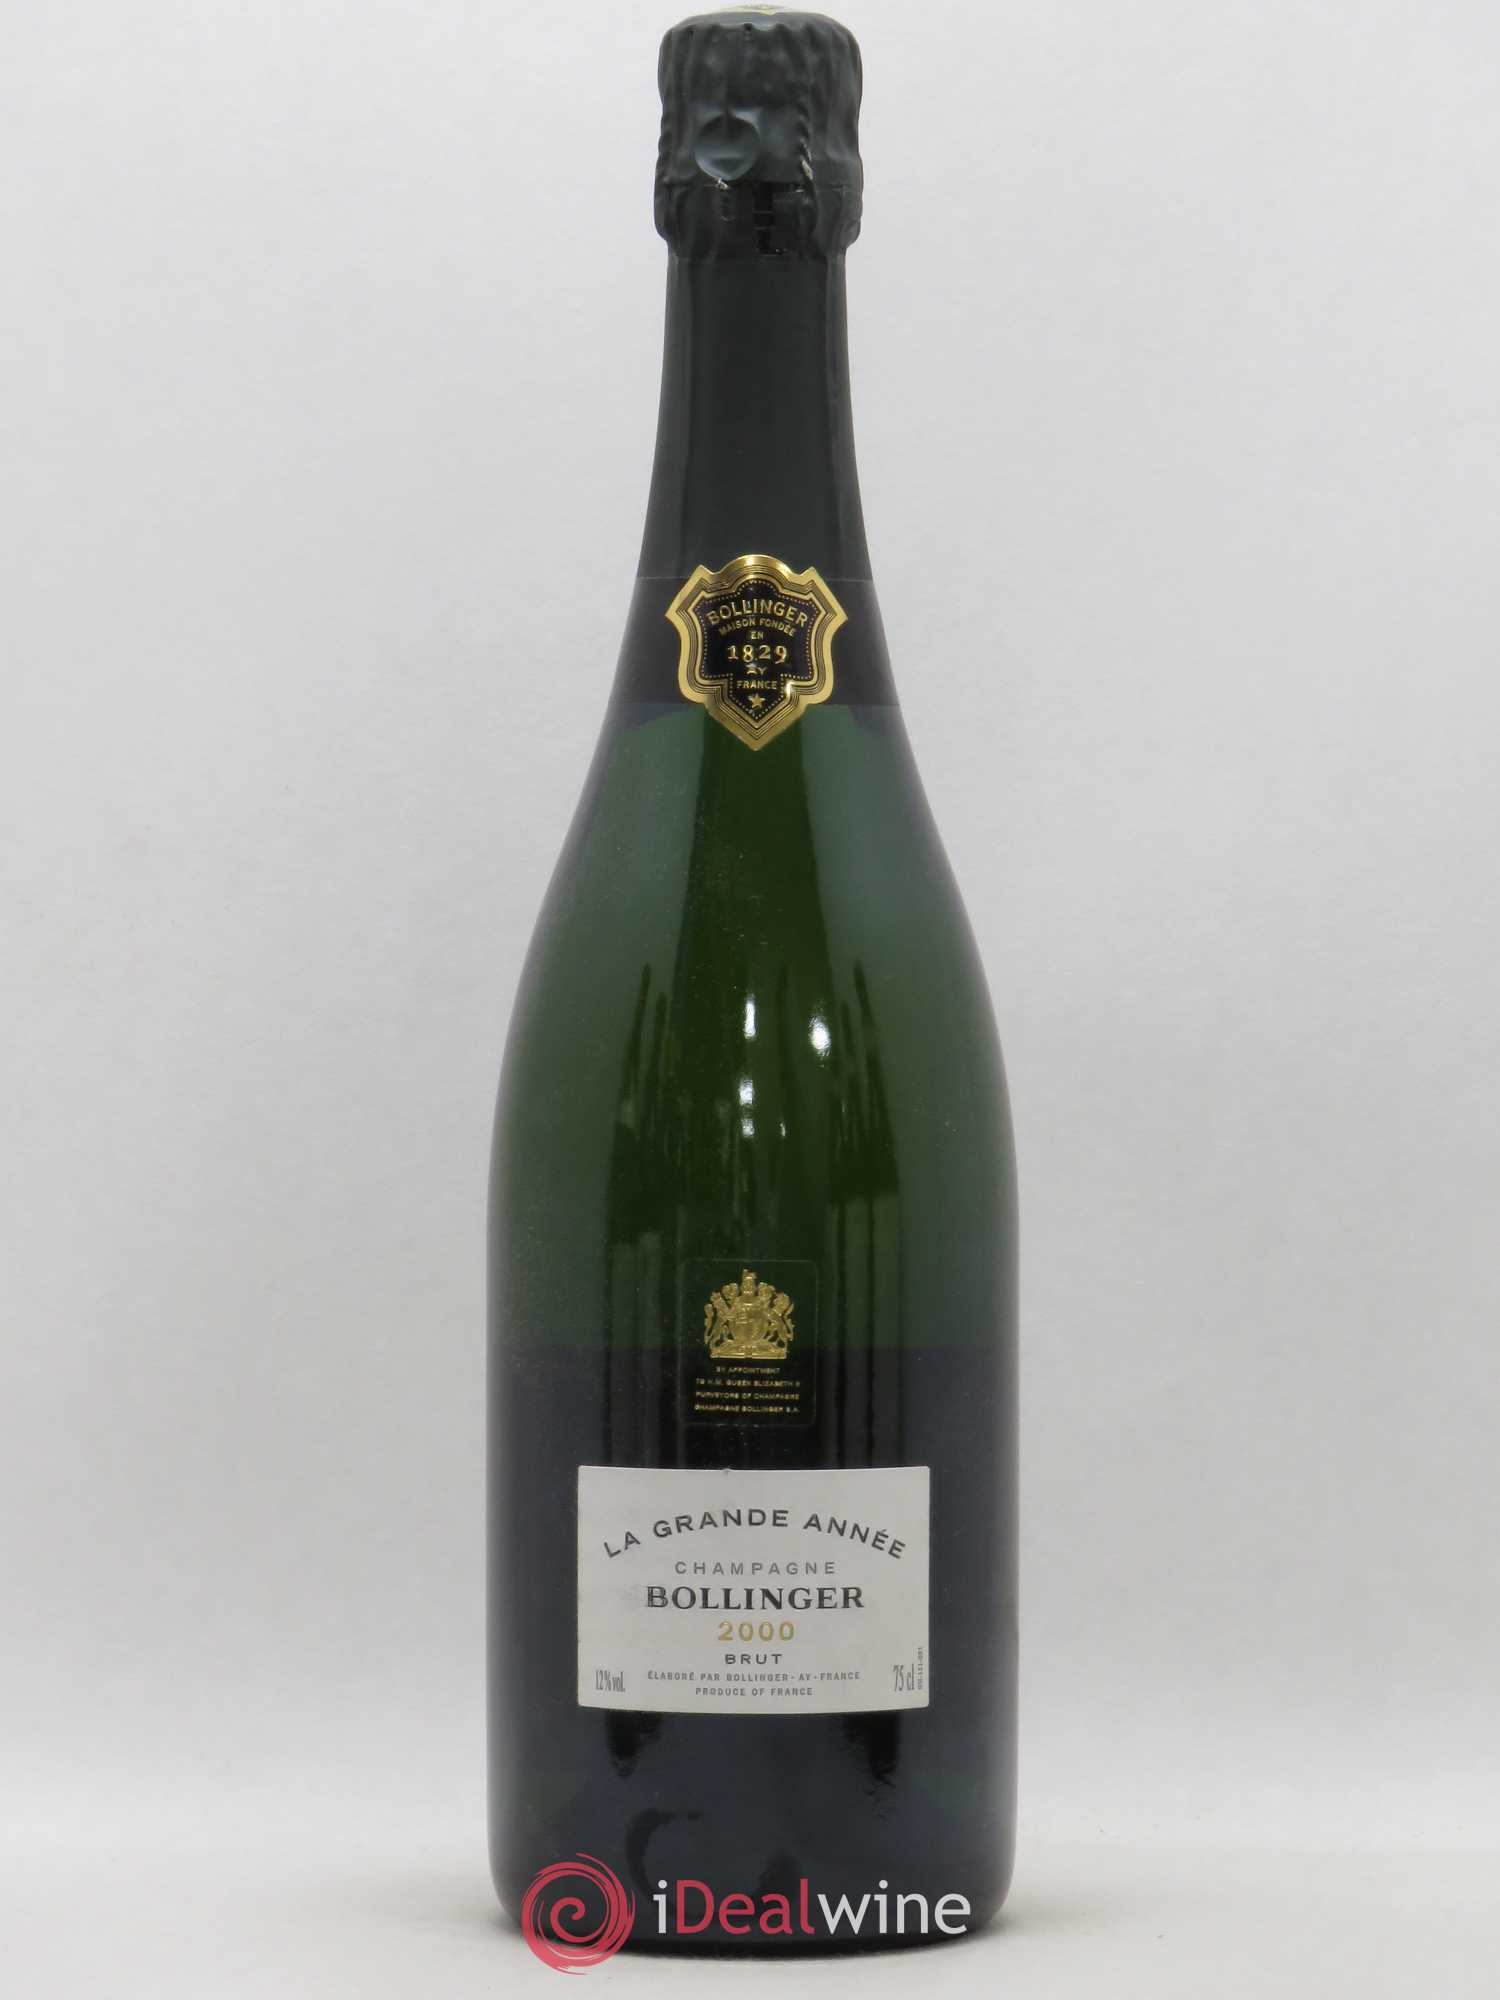 Grande Année Bollinger (no reserve) 2000 - Lot of 1 Bottle